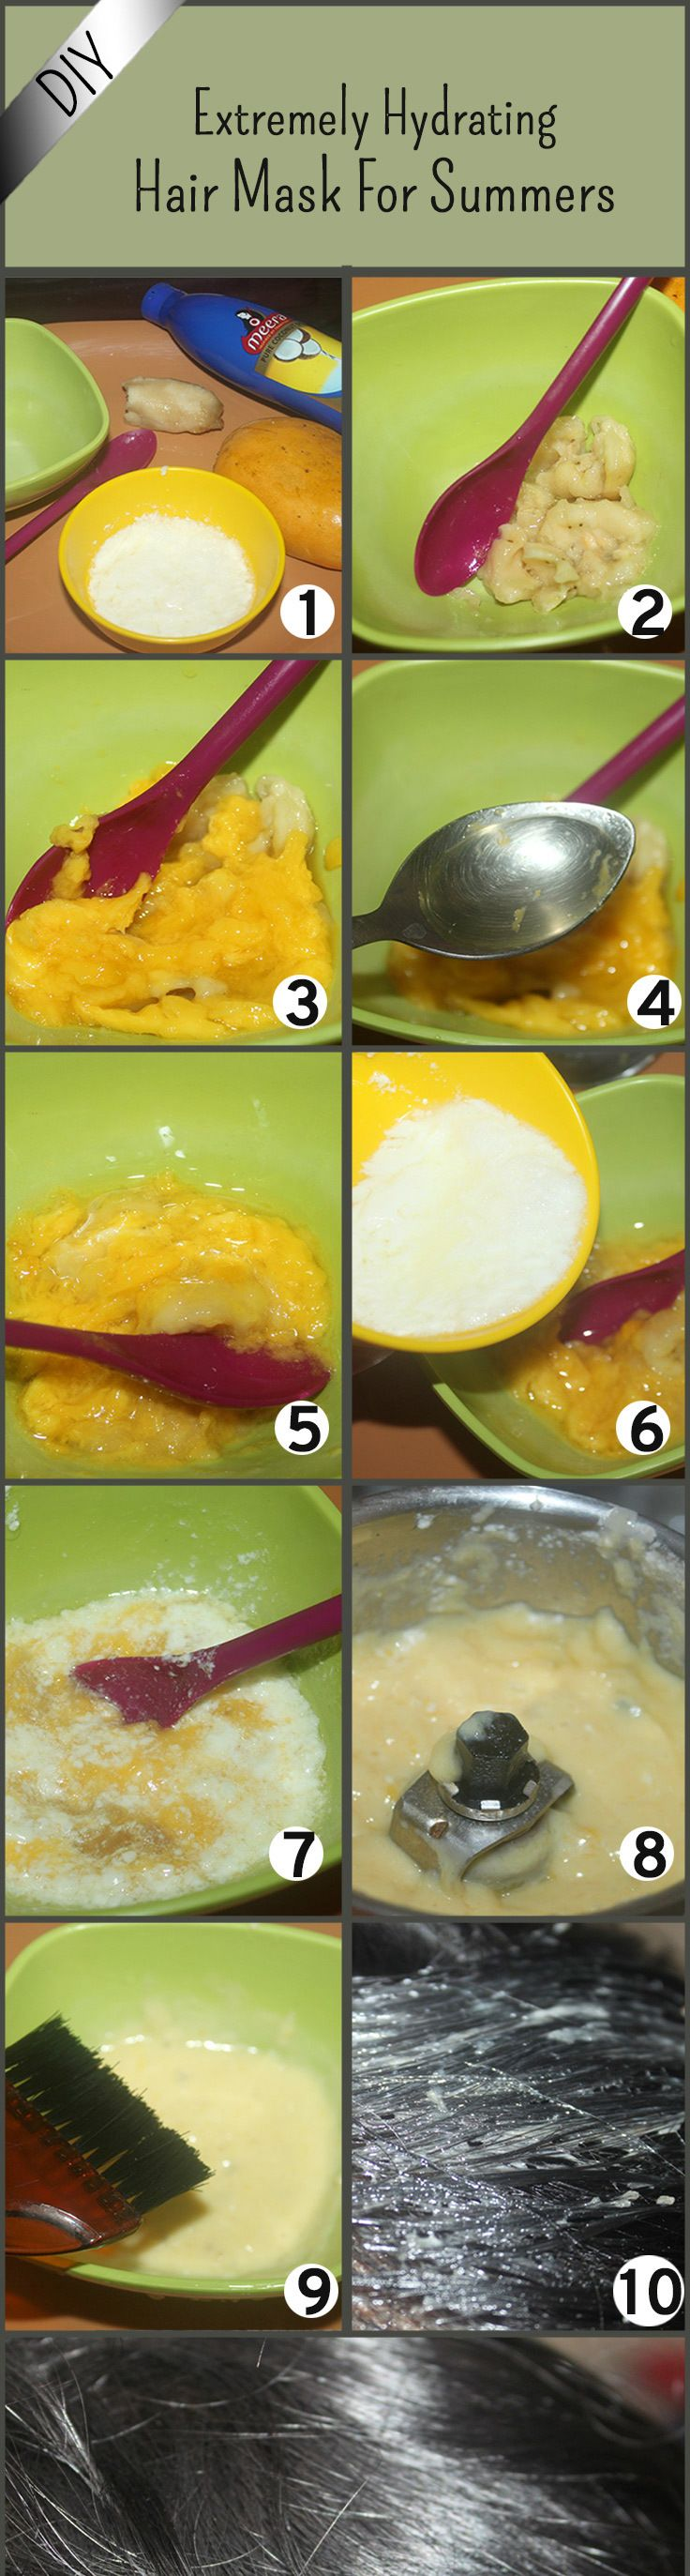 DIY - Extremely Hydrating Hair Mask For Summers : 1banana mashed, 3-4 pieces mango mashed, 2tbsp olive oil, 4tbsp yogurt....make paste n apply on hair for 20min.